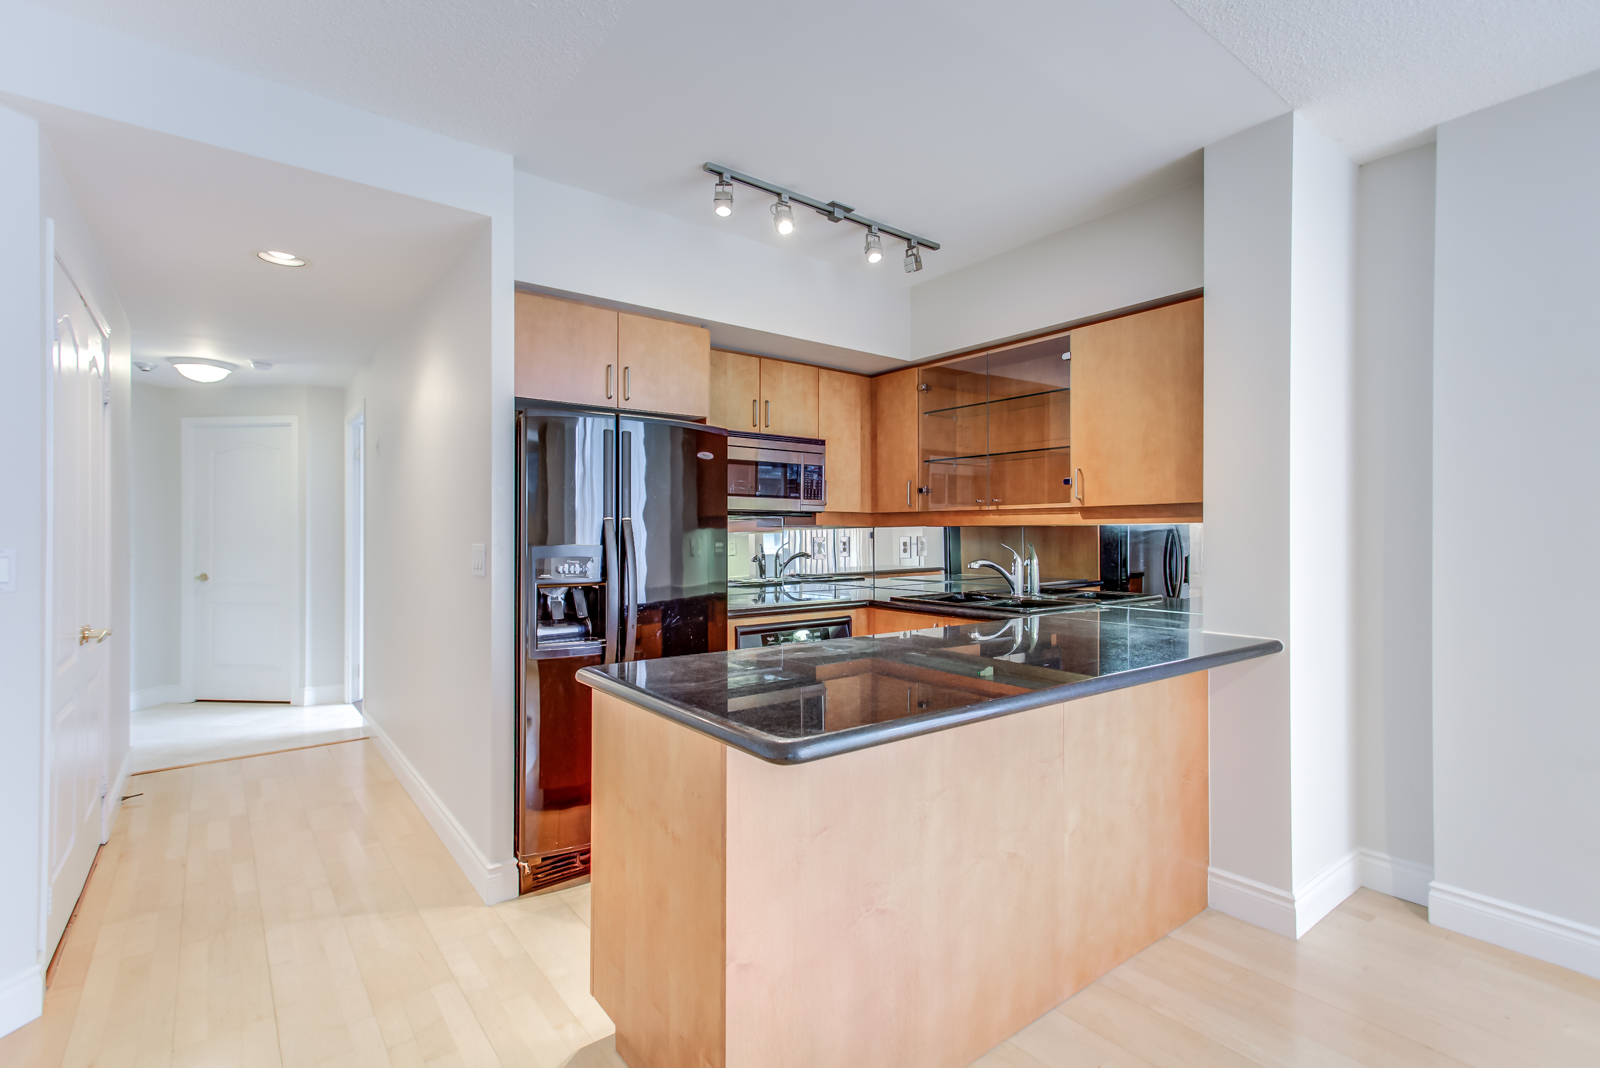 Kitchen with black counters, black fridge, wooden cabinets and track-lights.